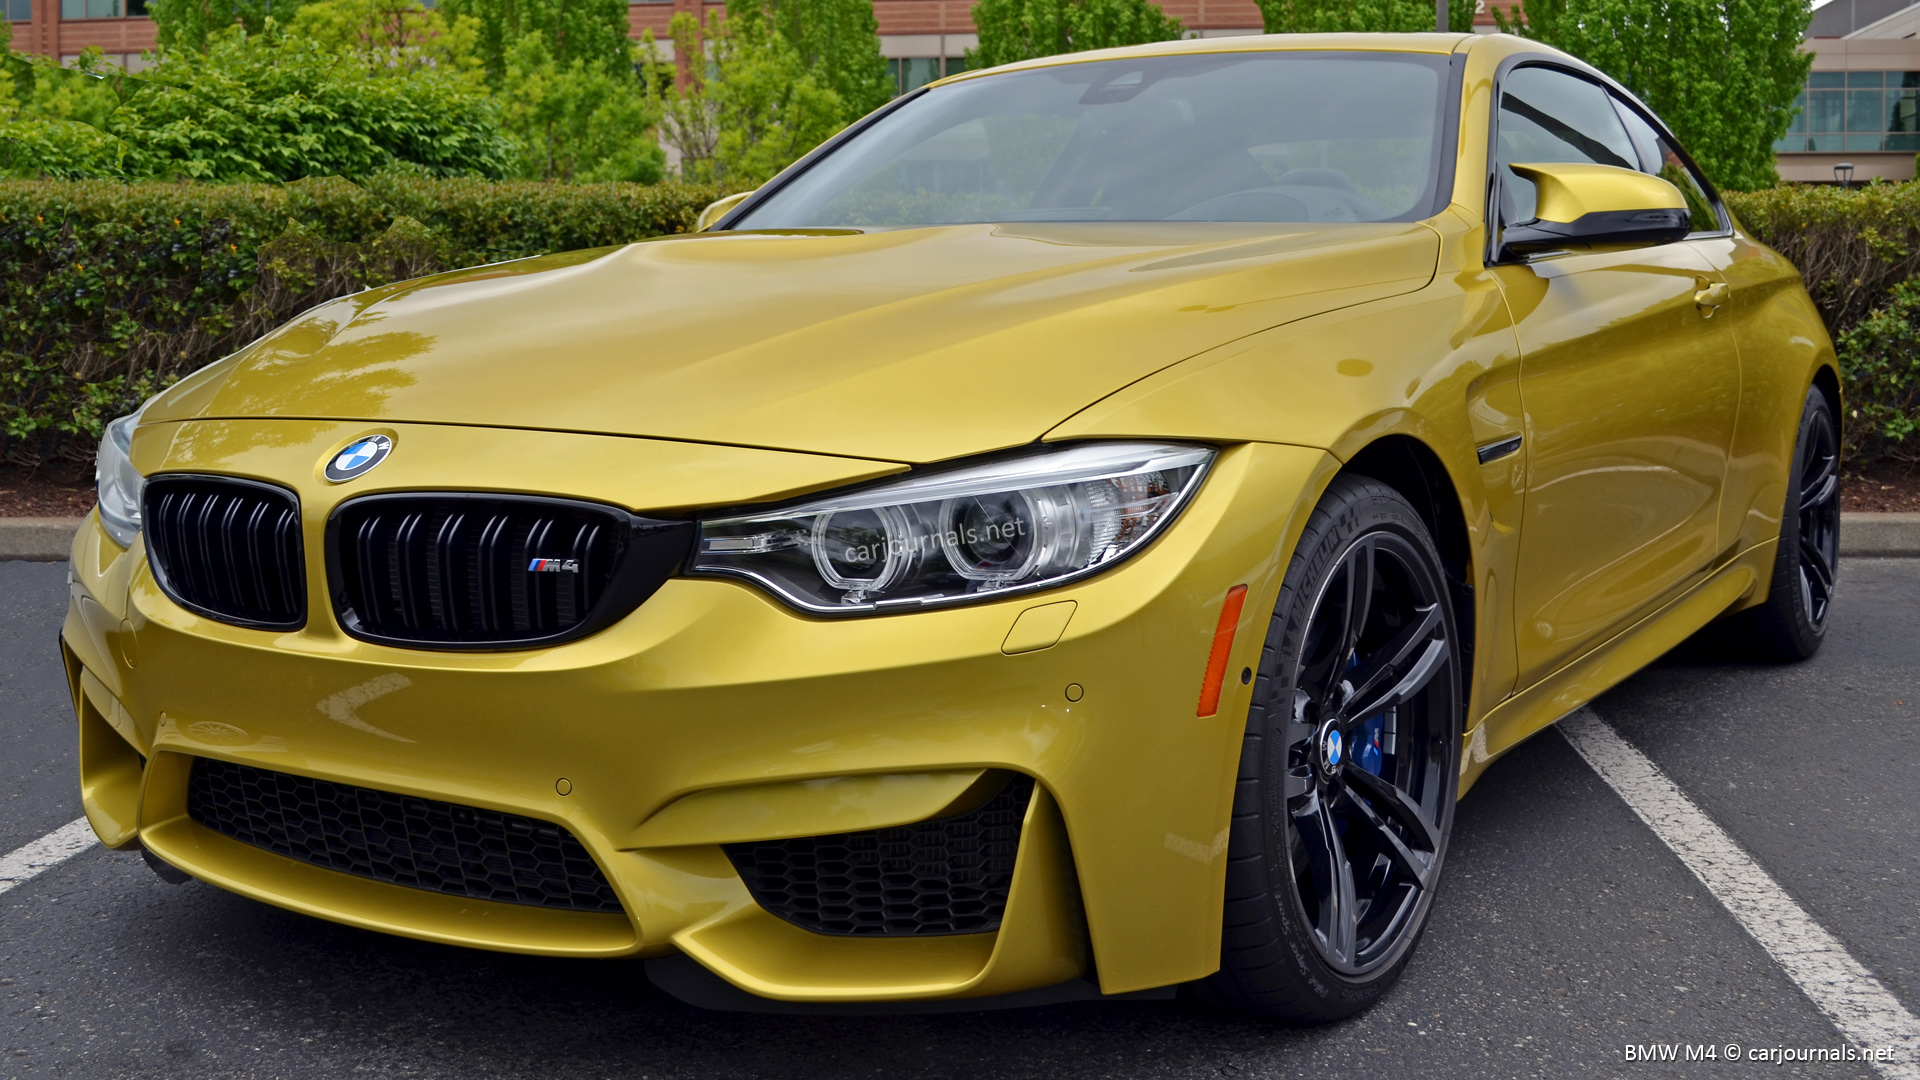 BMW M4 U2013 HD Wallpaper   Car Journals